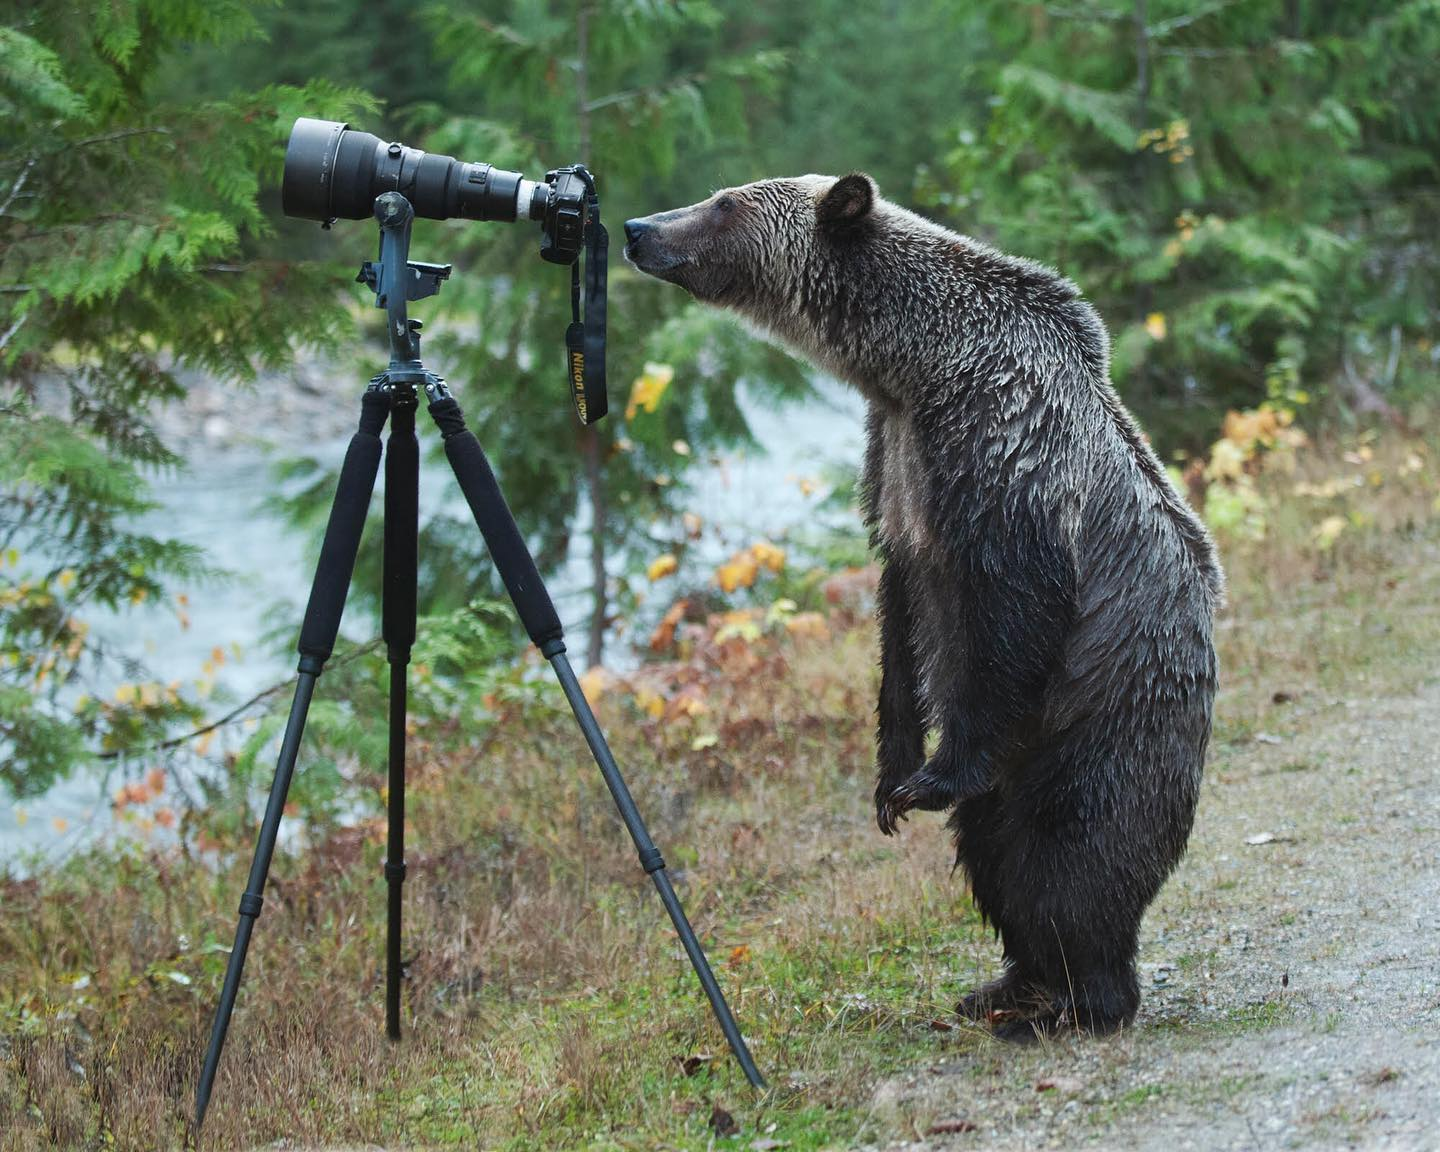 A grizzly bear stands on their two hind feet to look closely at a camera and tripod bedside a river in the Kootenays.